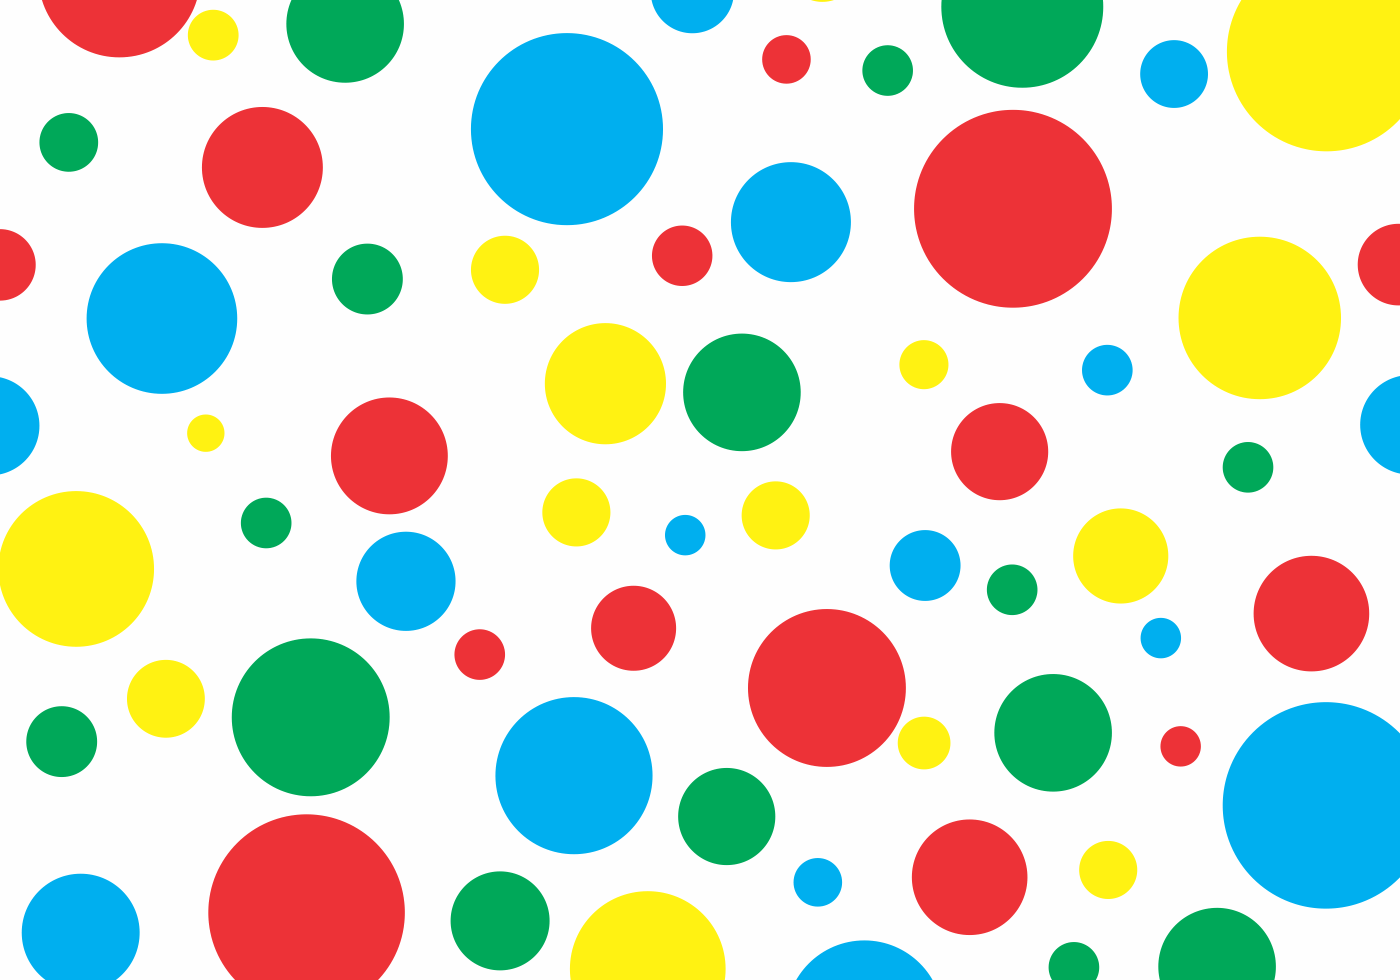 Twister Polka Dots Free Vector Download Free Vector Art